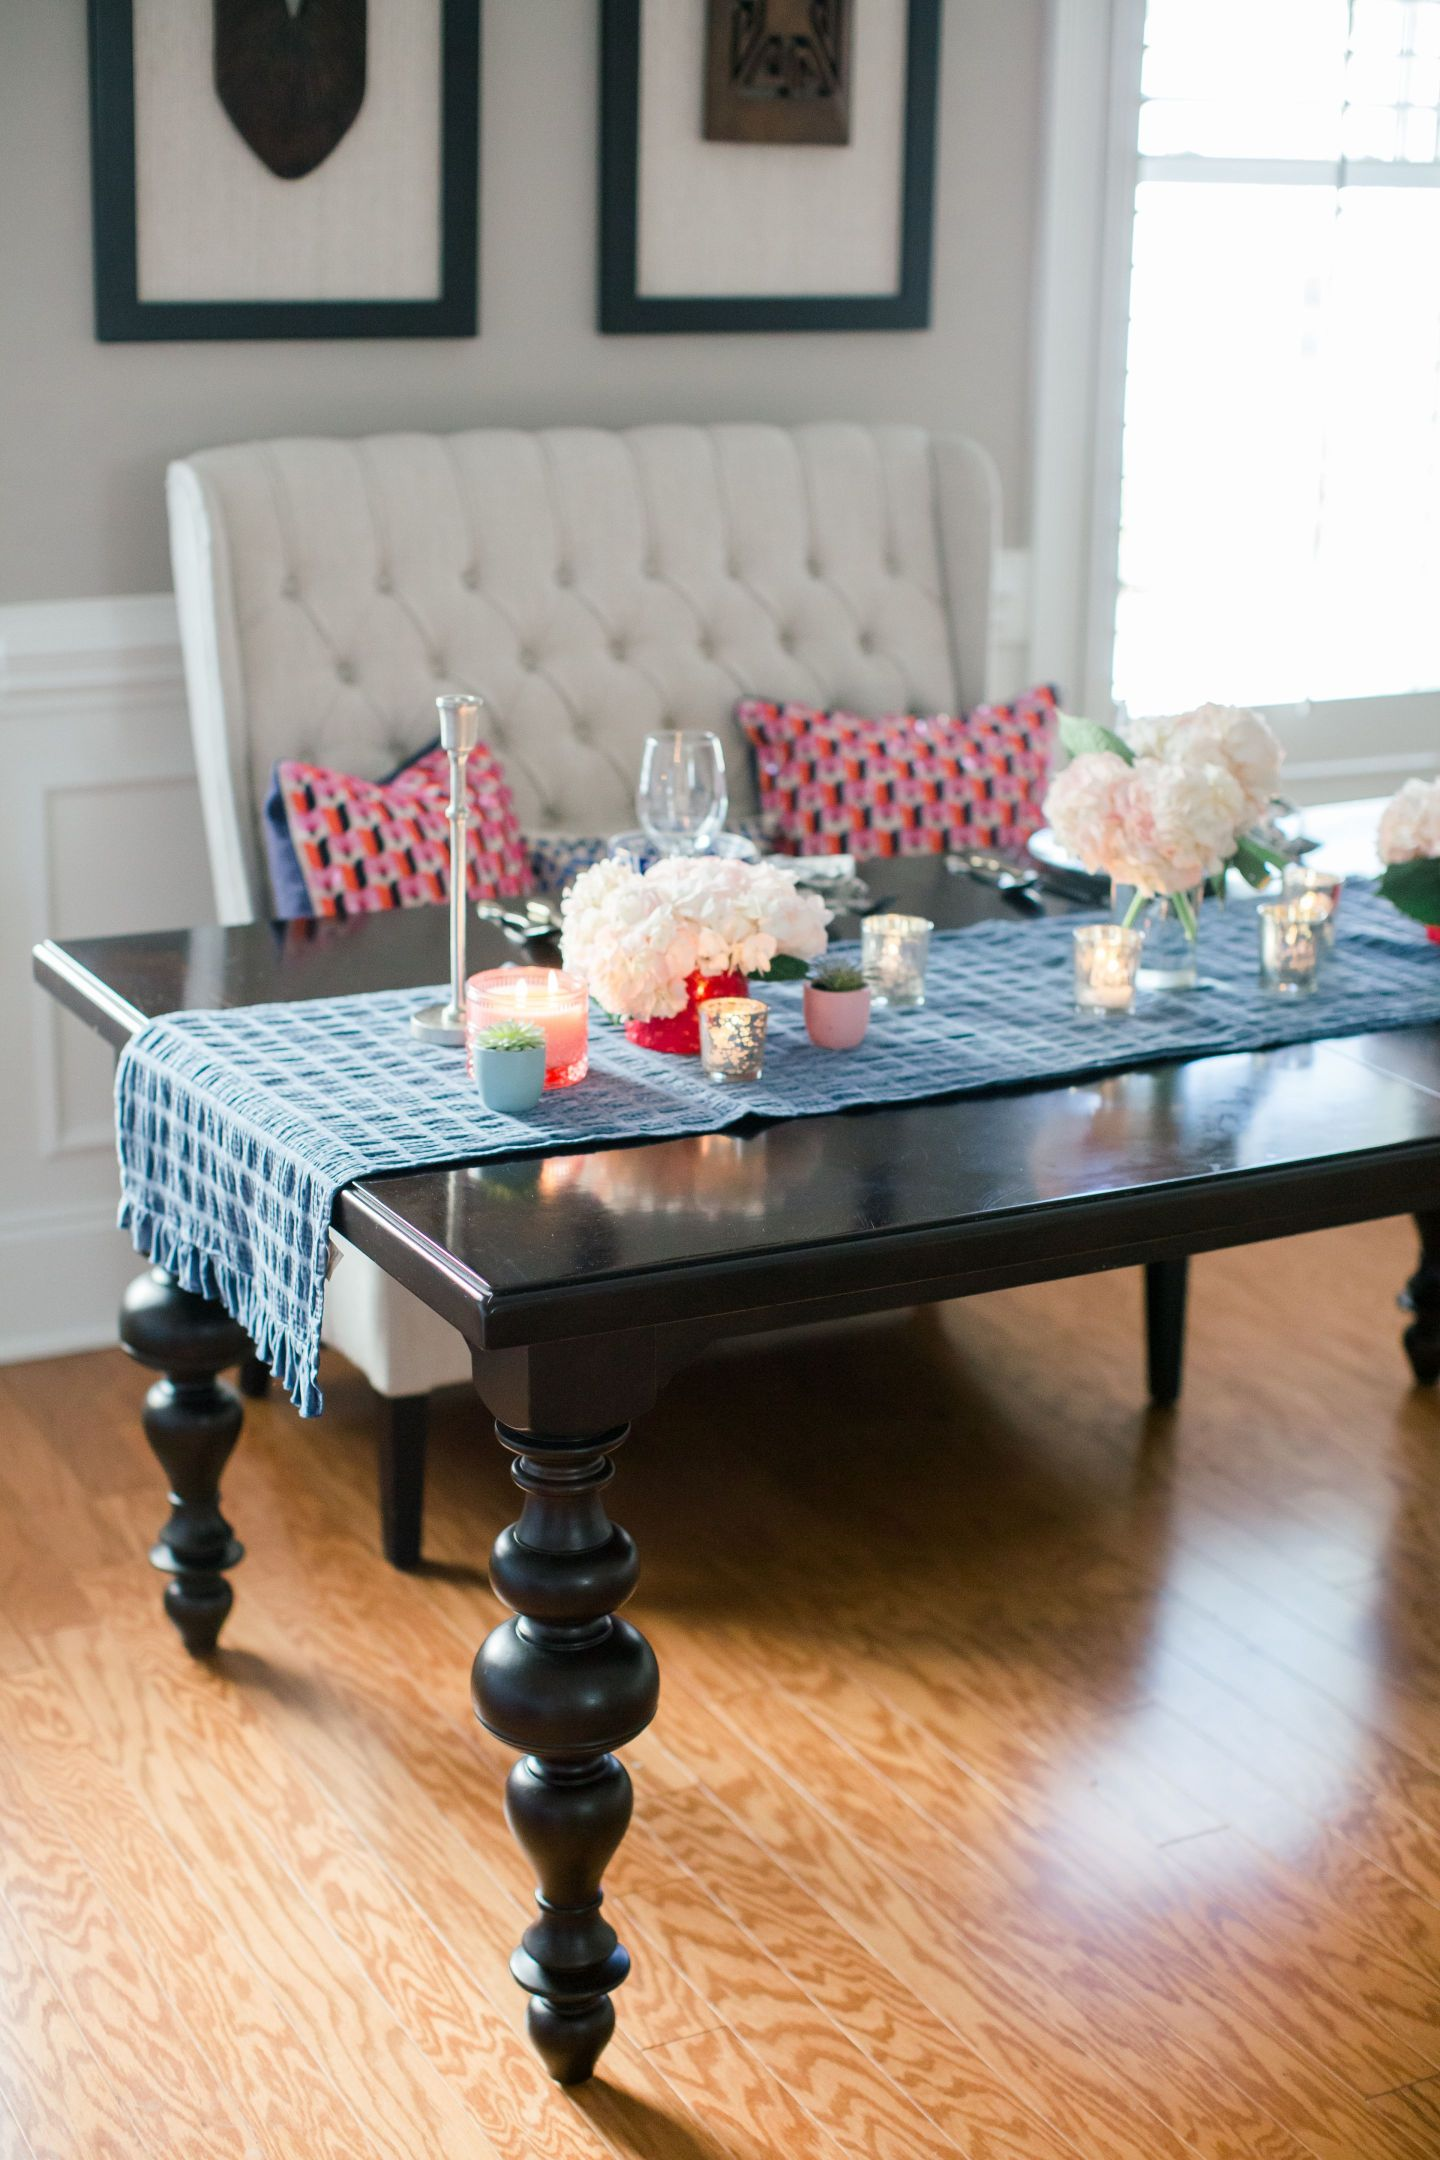 Valentines-Day-Shoot-Style-Perfect-Events-Samantha-Laffoon-Photography-6-1440x2160 Southern Entertaining: Tips for Hosting Valentine's Day at Home from the Experts